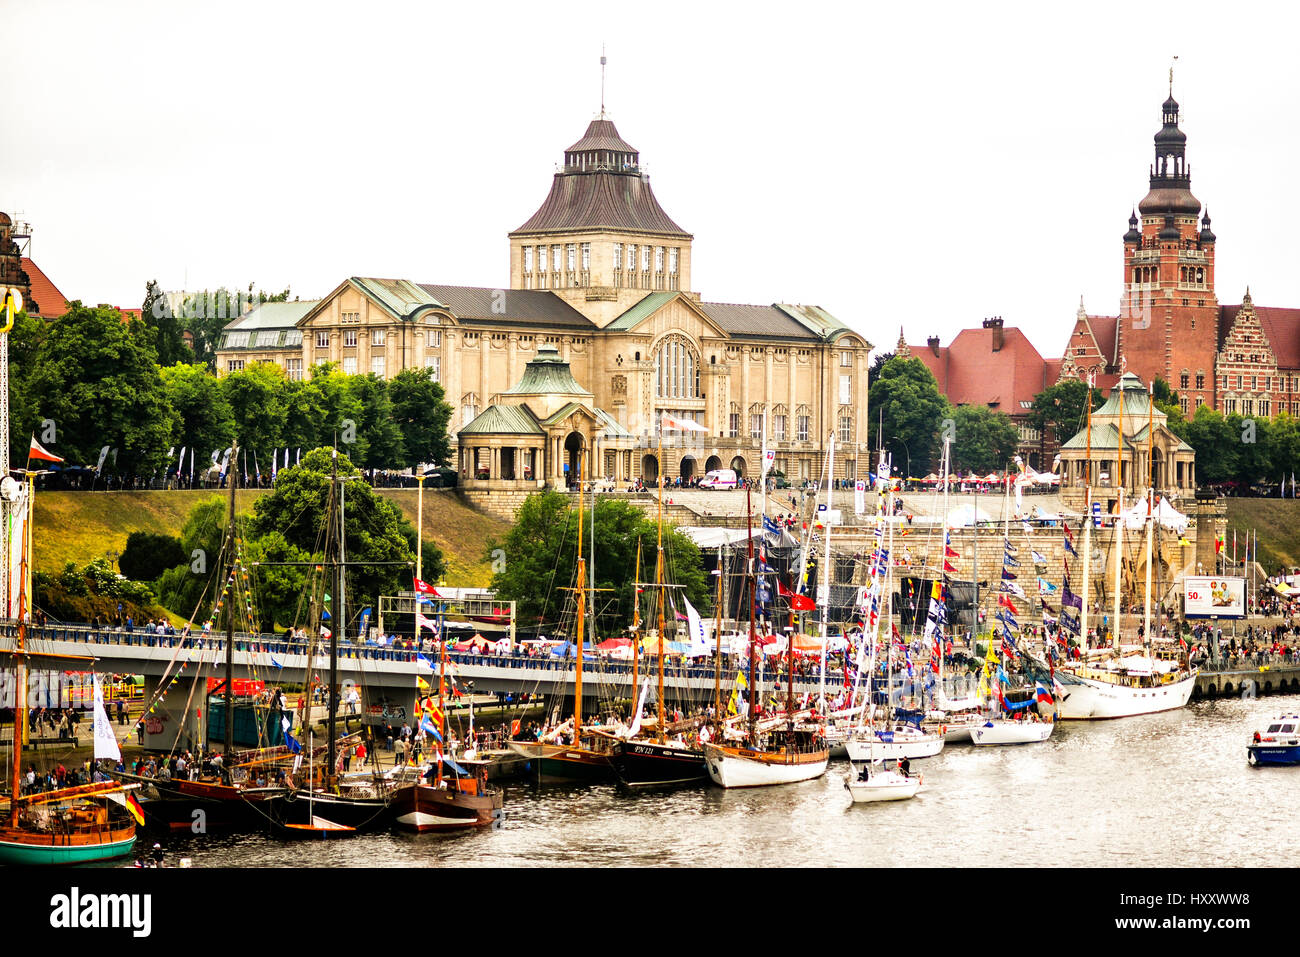 View of Waly Chrobrego in Szczecin during Tall Ships Races 2015 - Stock Image